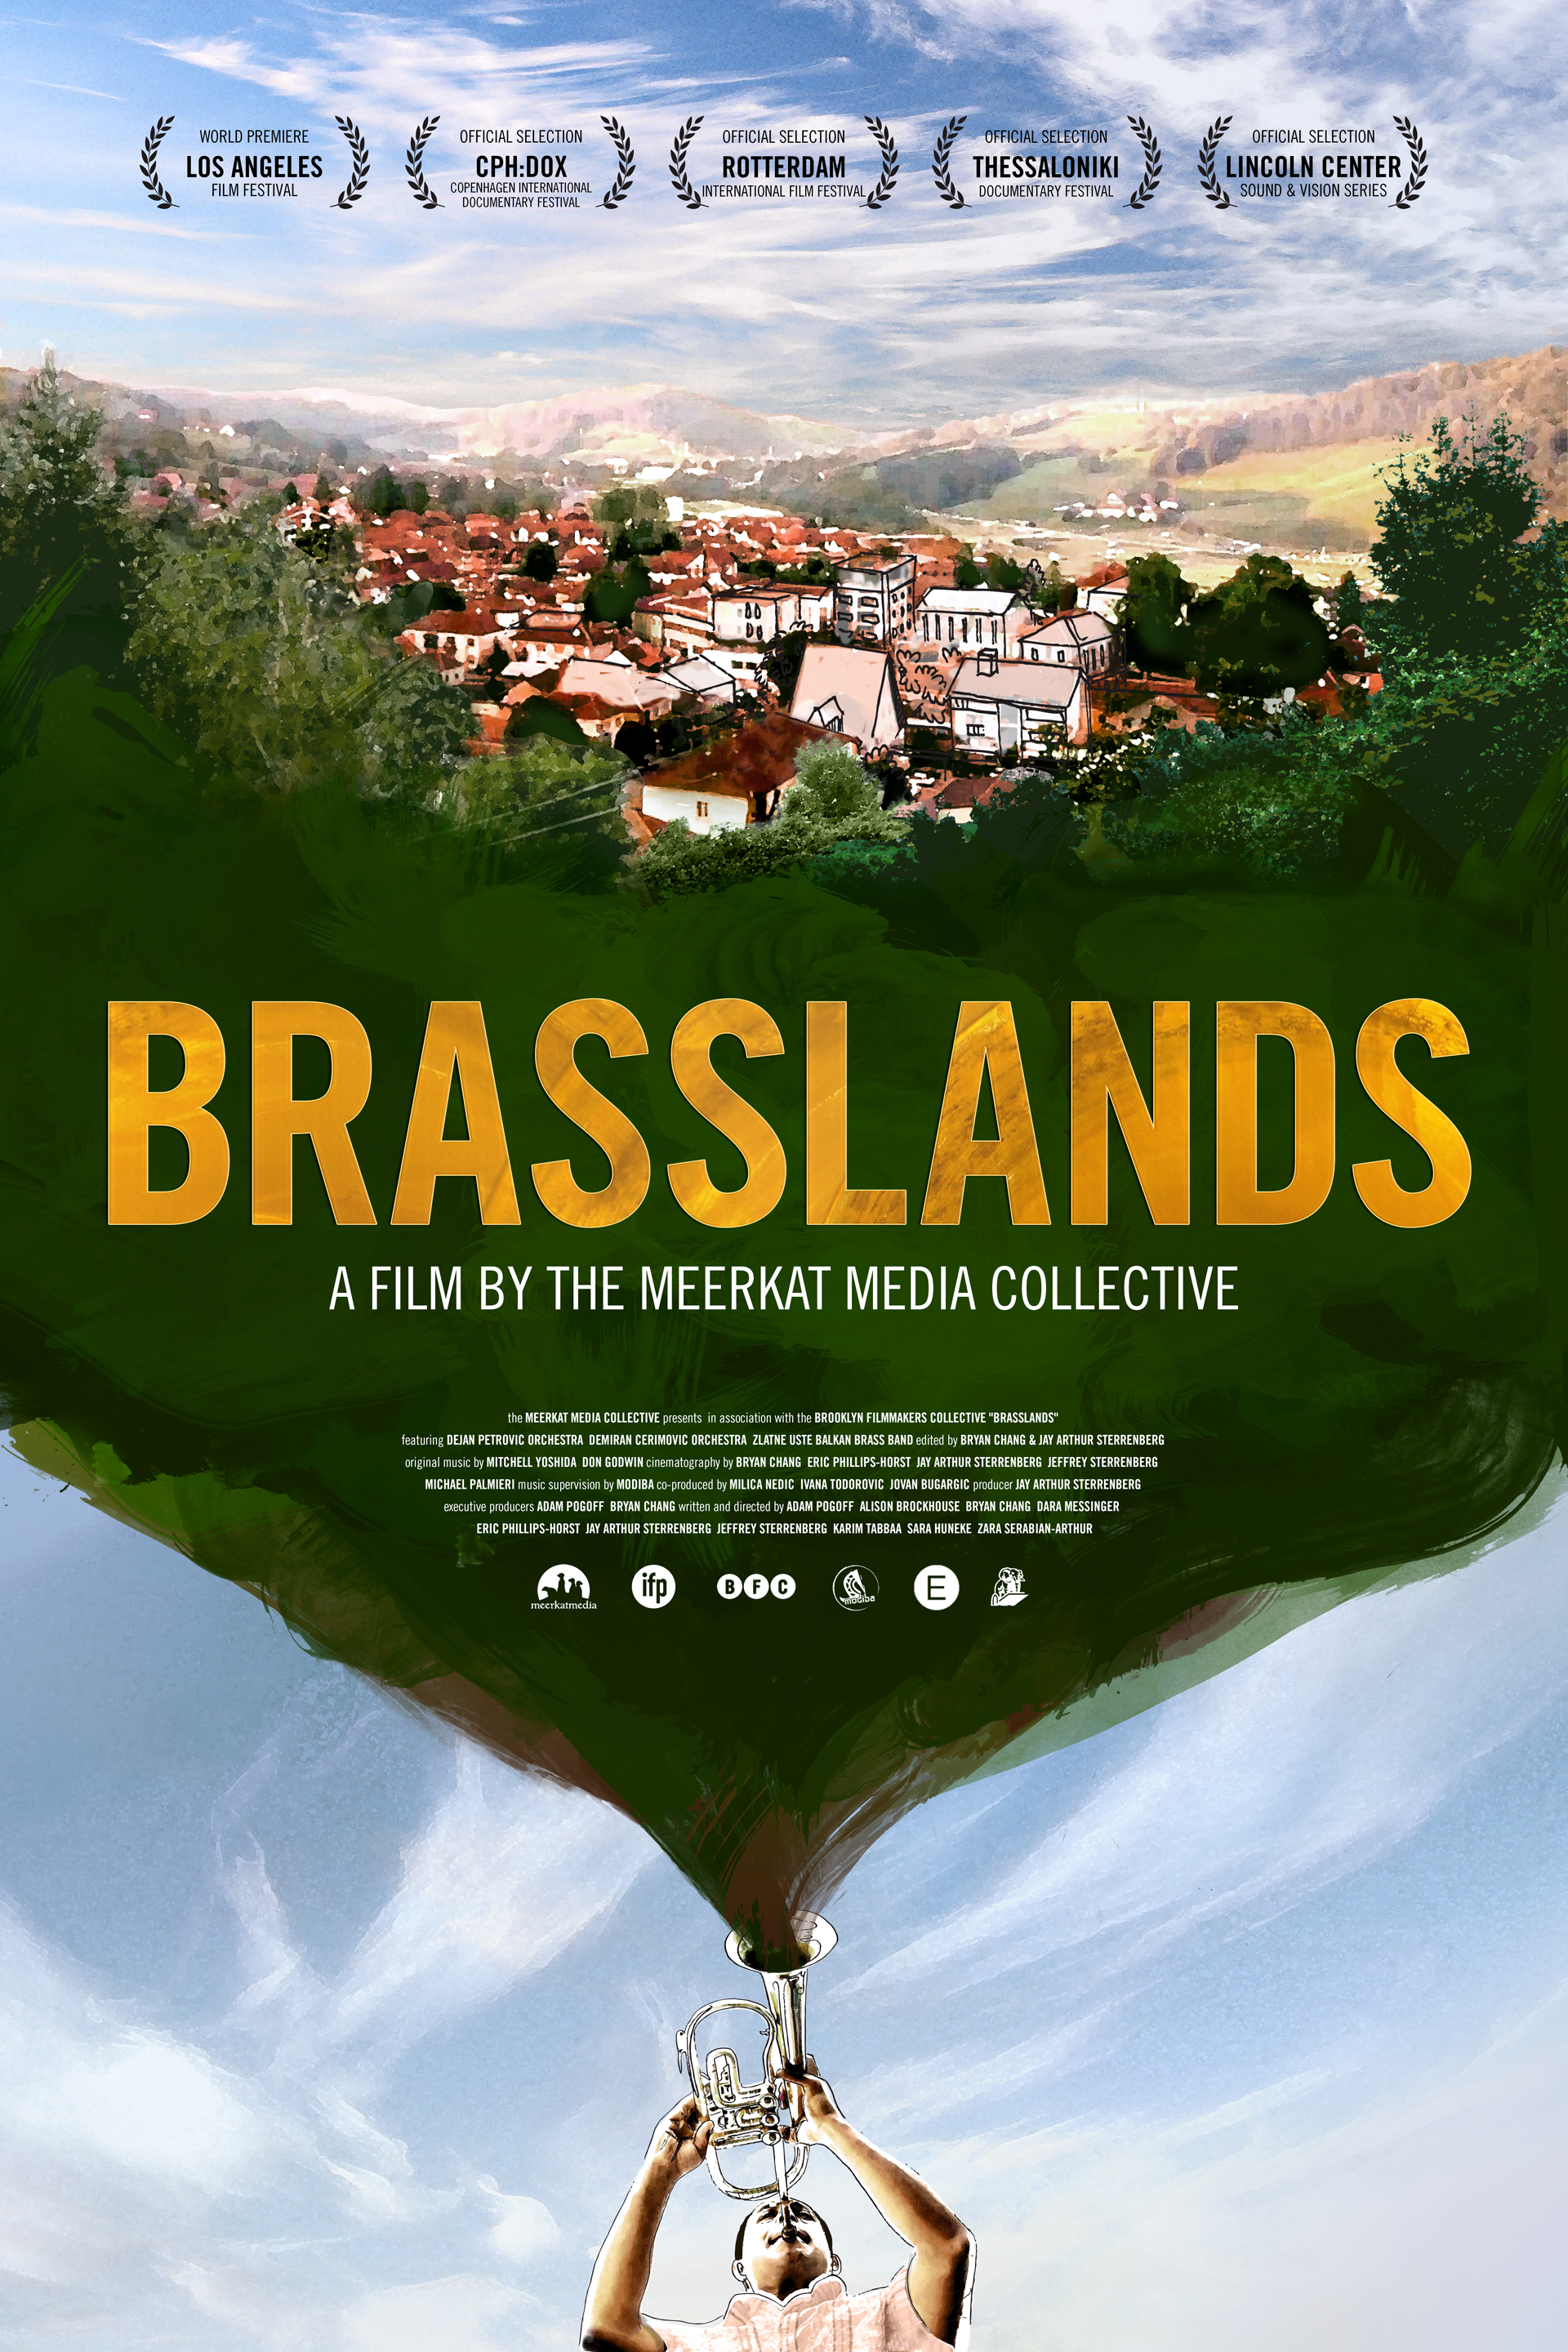 Brasslands The Film